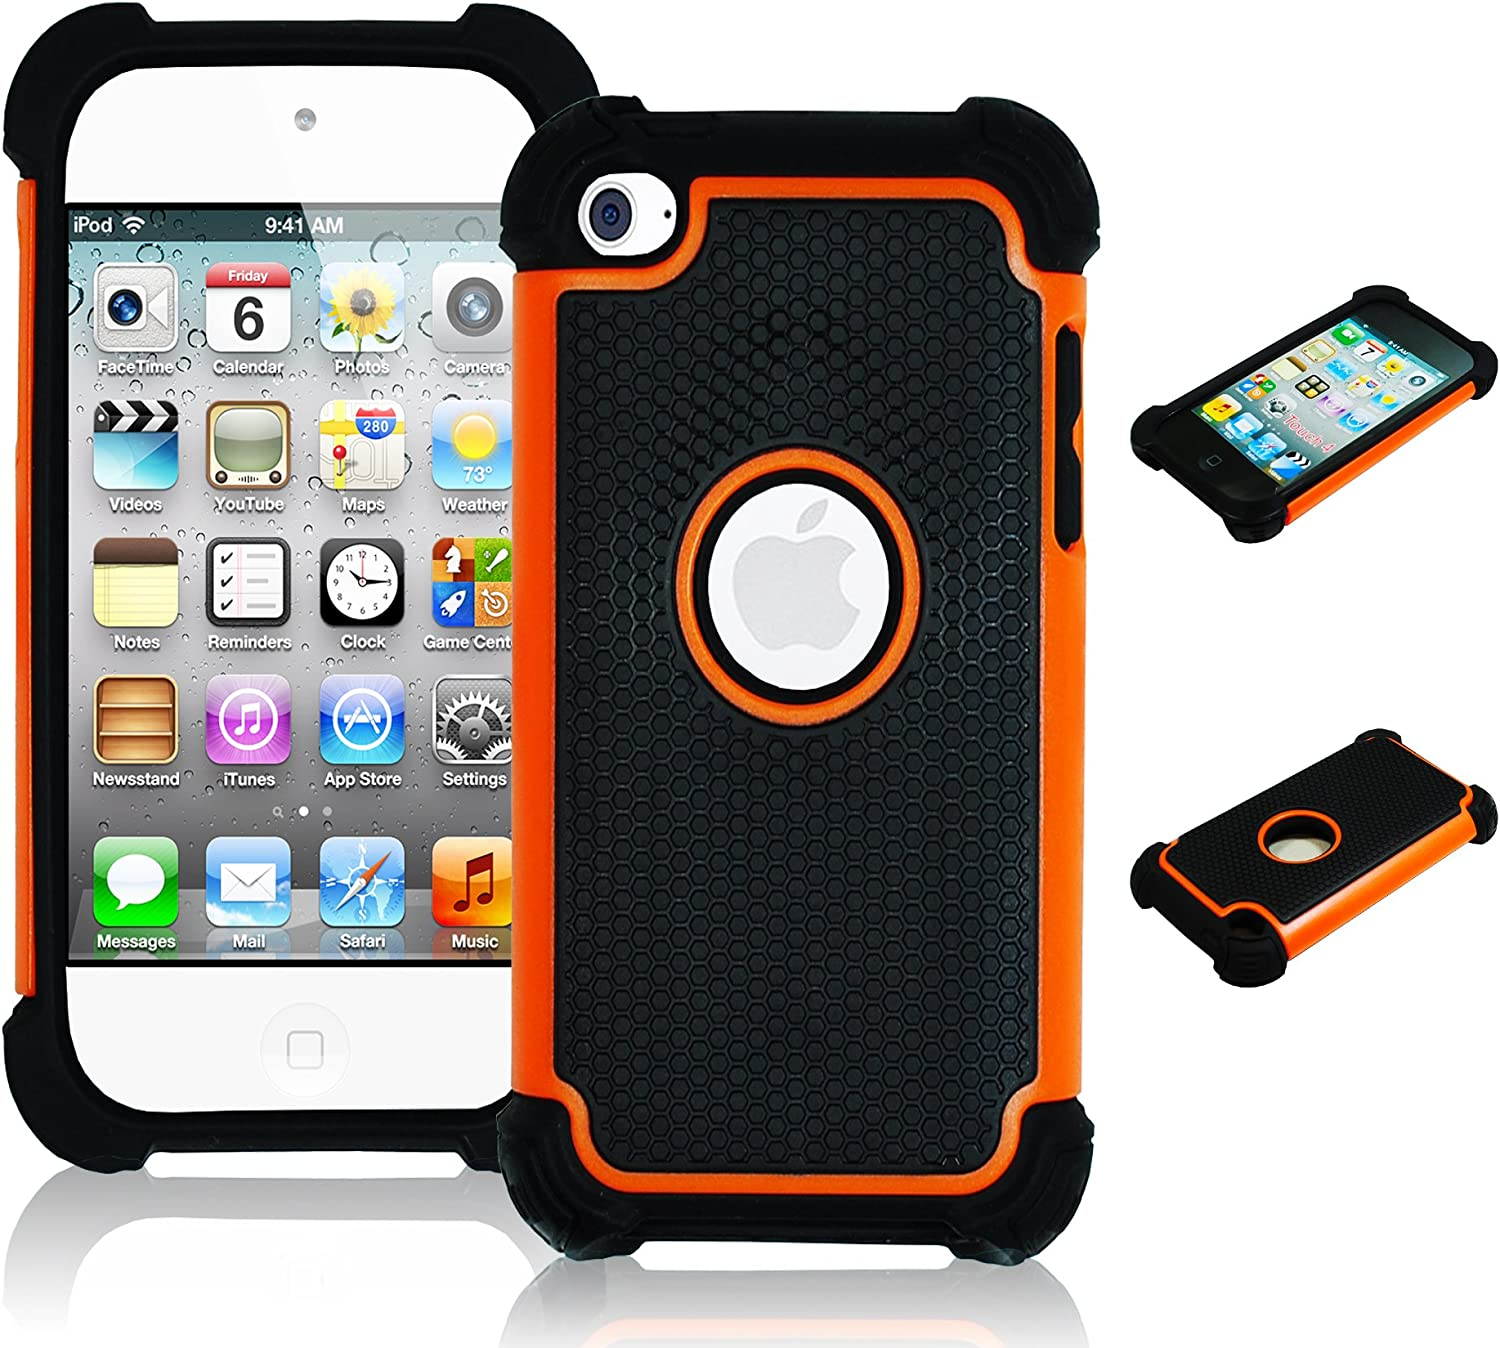 iPod Touch 4 Case, Bastex Hybrid Slim Fit Black Rubber Silicone Cover Hard Plastic Orange & Black Shock Case for Apple iPod Touch 4, 4th Generation